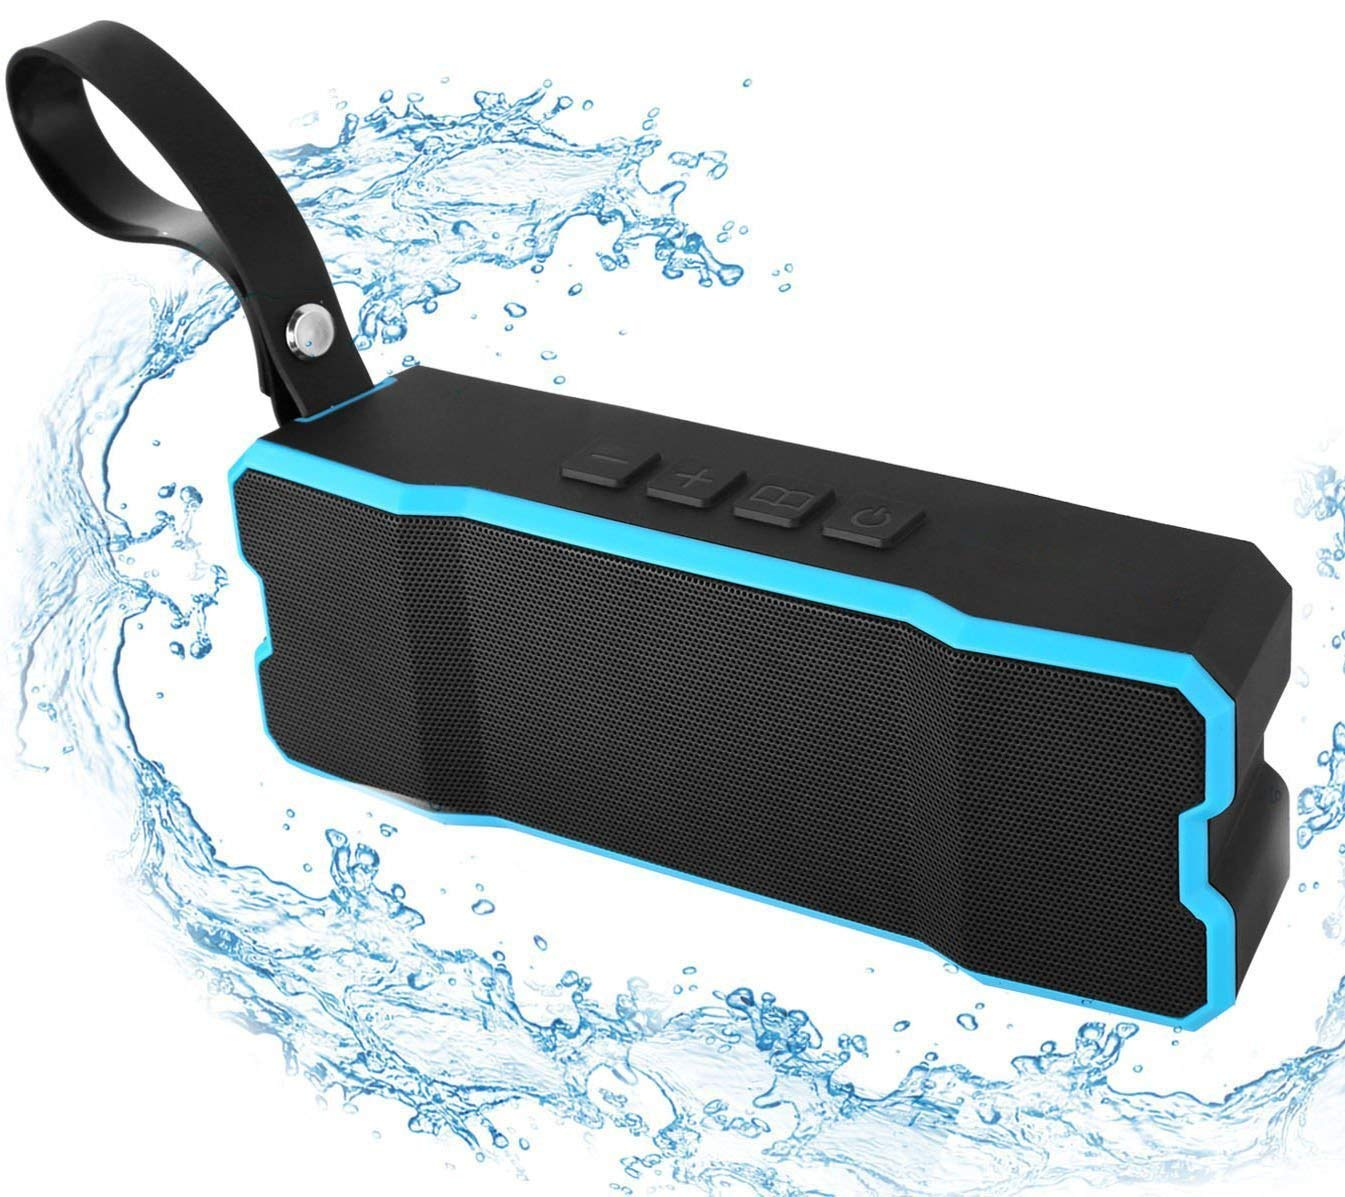 Just the Waterproof Bluetooth Speaker I was looking for